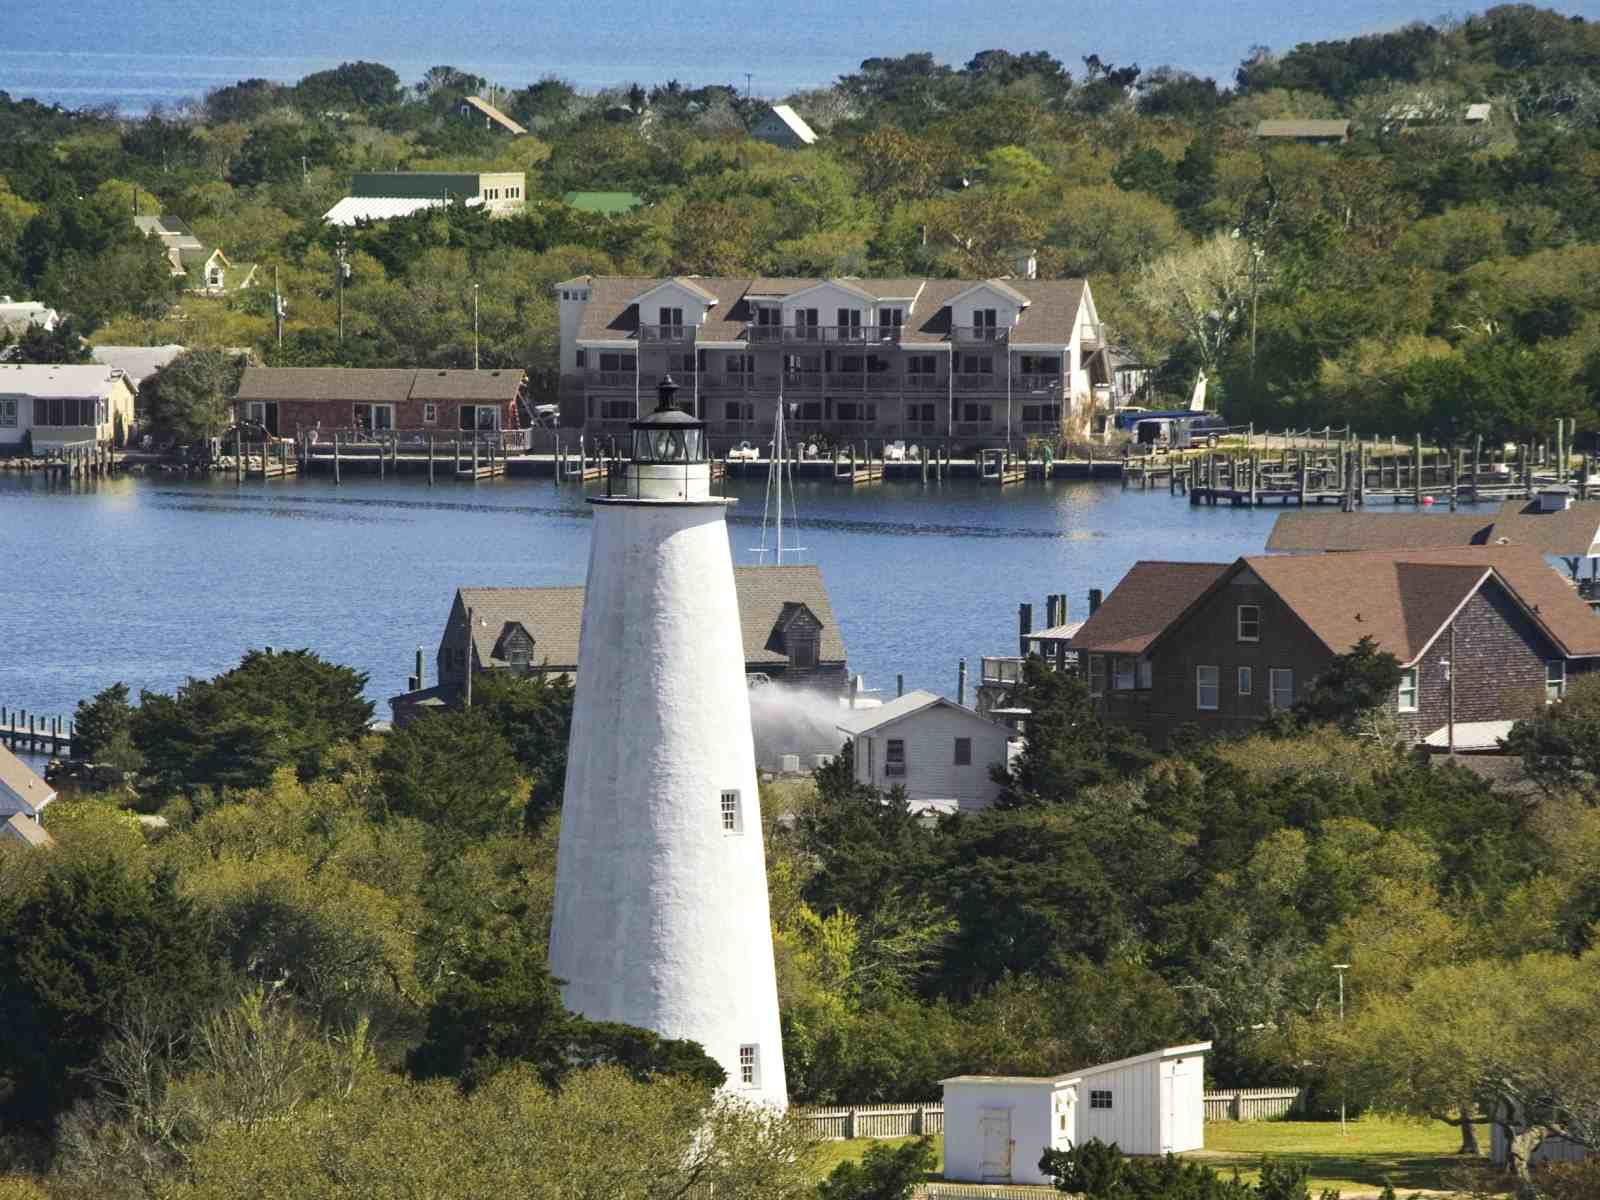 Aerial view of Ocracoke Lighthouse and Village